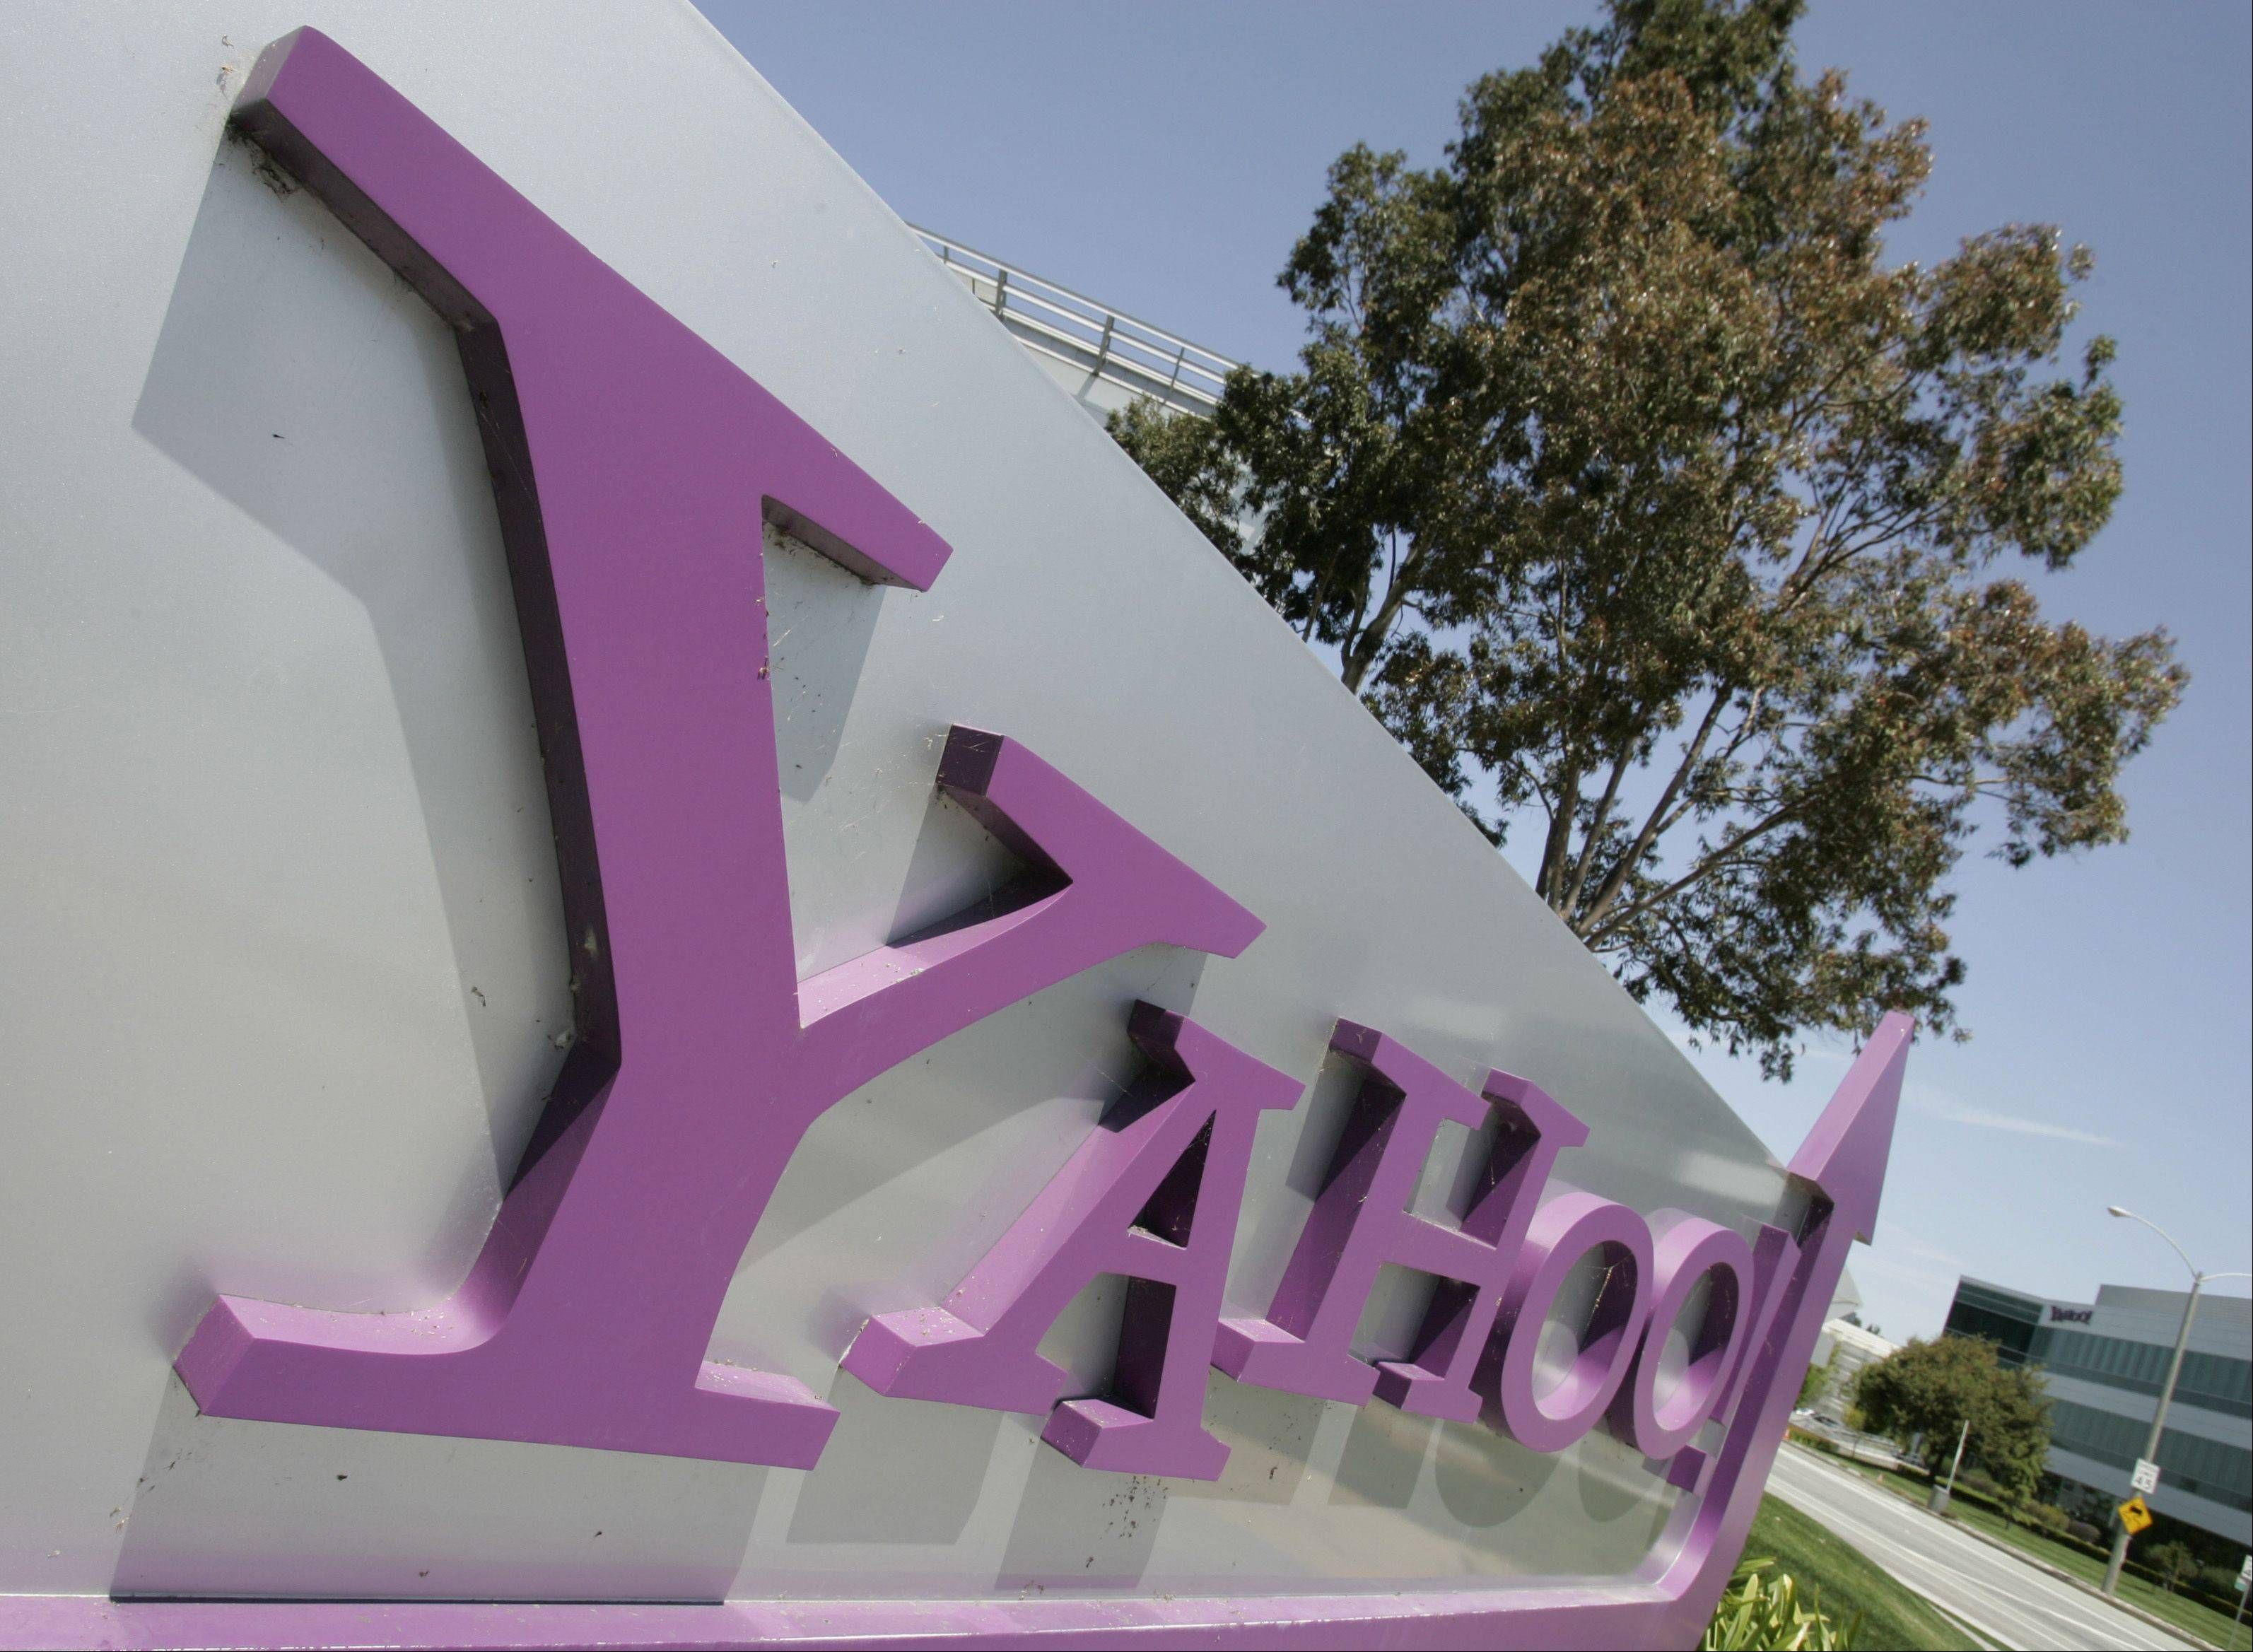 Yahoo! Inc. reported fourth-quarter revenue that topped analysts' estimates and increased annual sales for the first time since 2008 as the largest U.S. Web portal benefited from buoyant demand for online search.